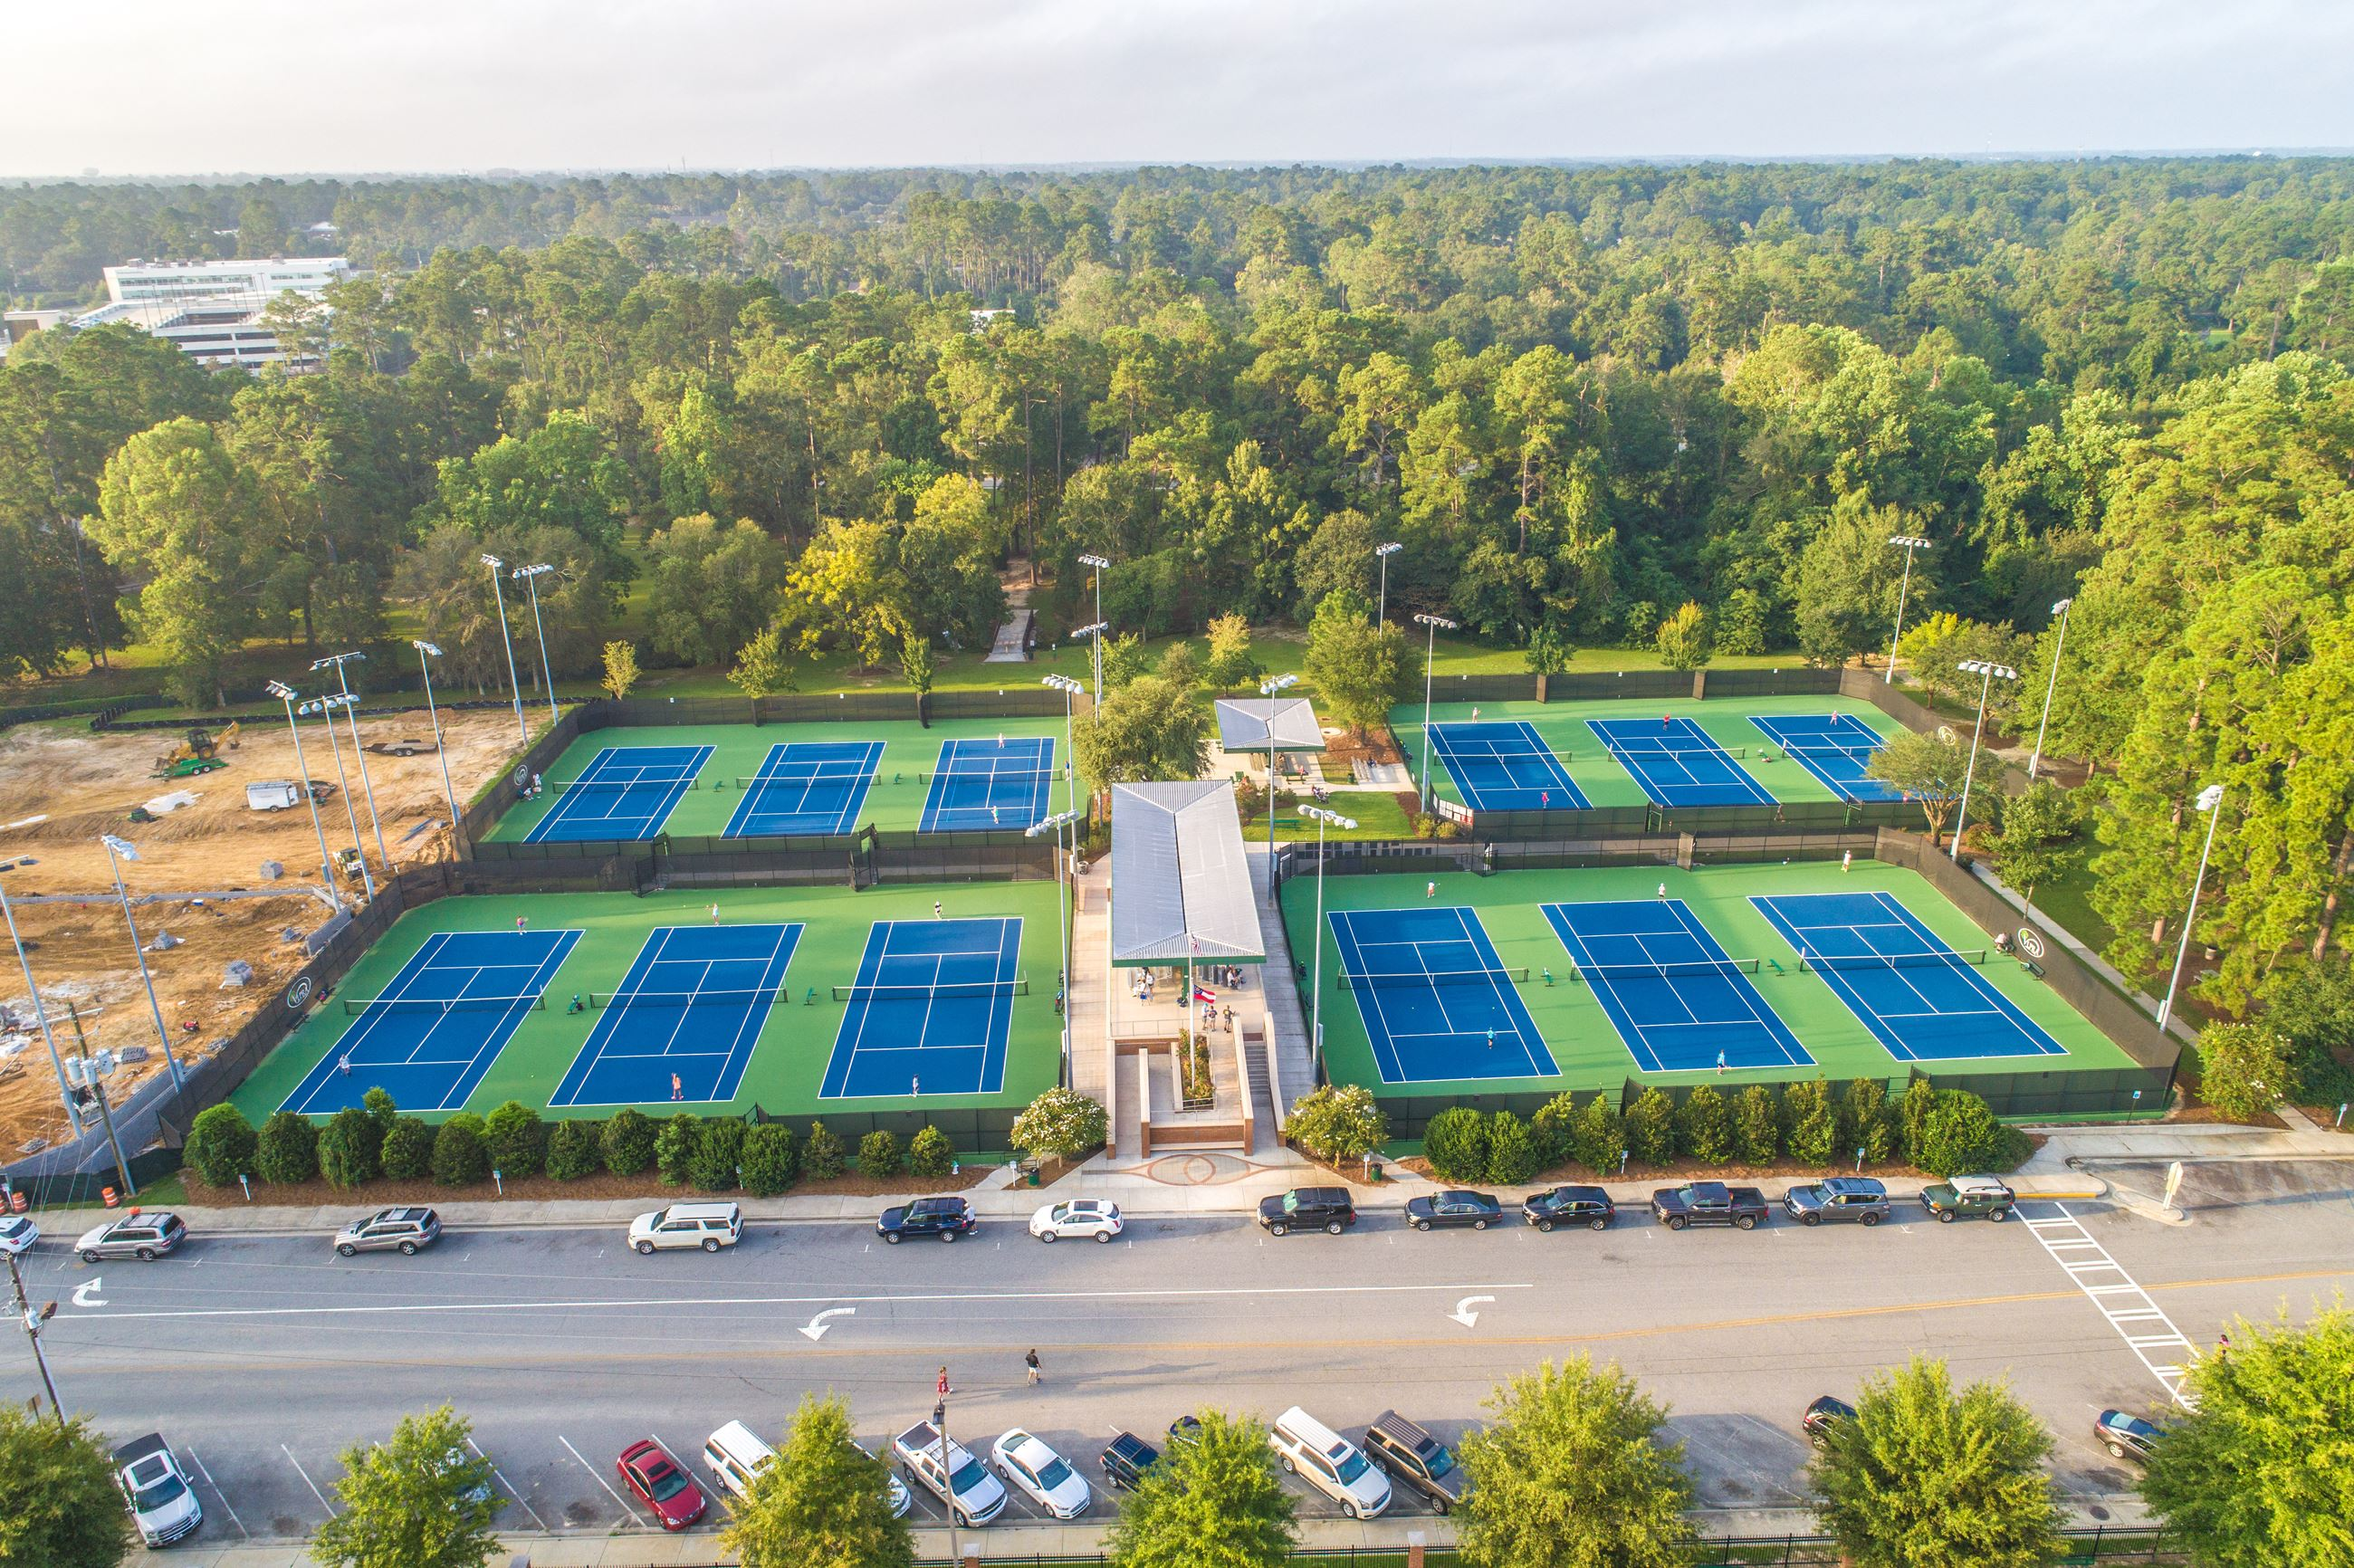 An image of an aerial view of tennis complex with eight blue courts on a green background.